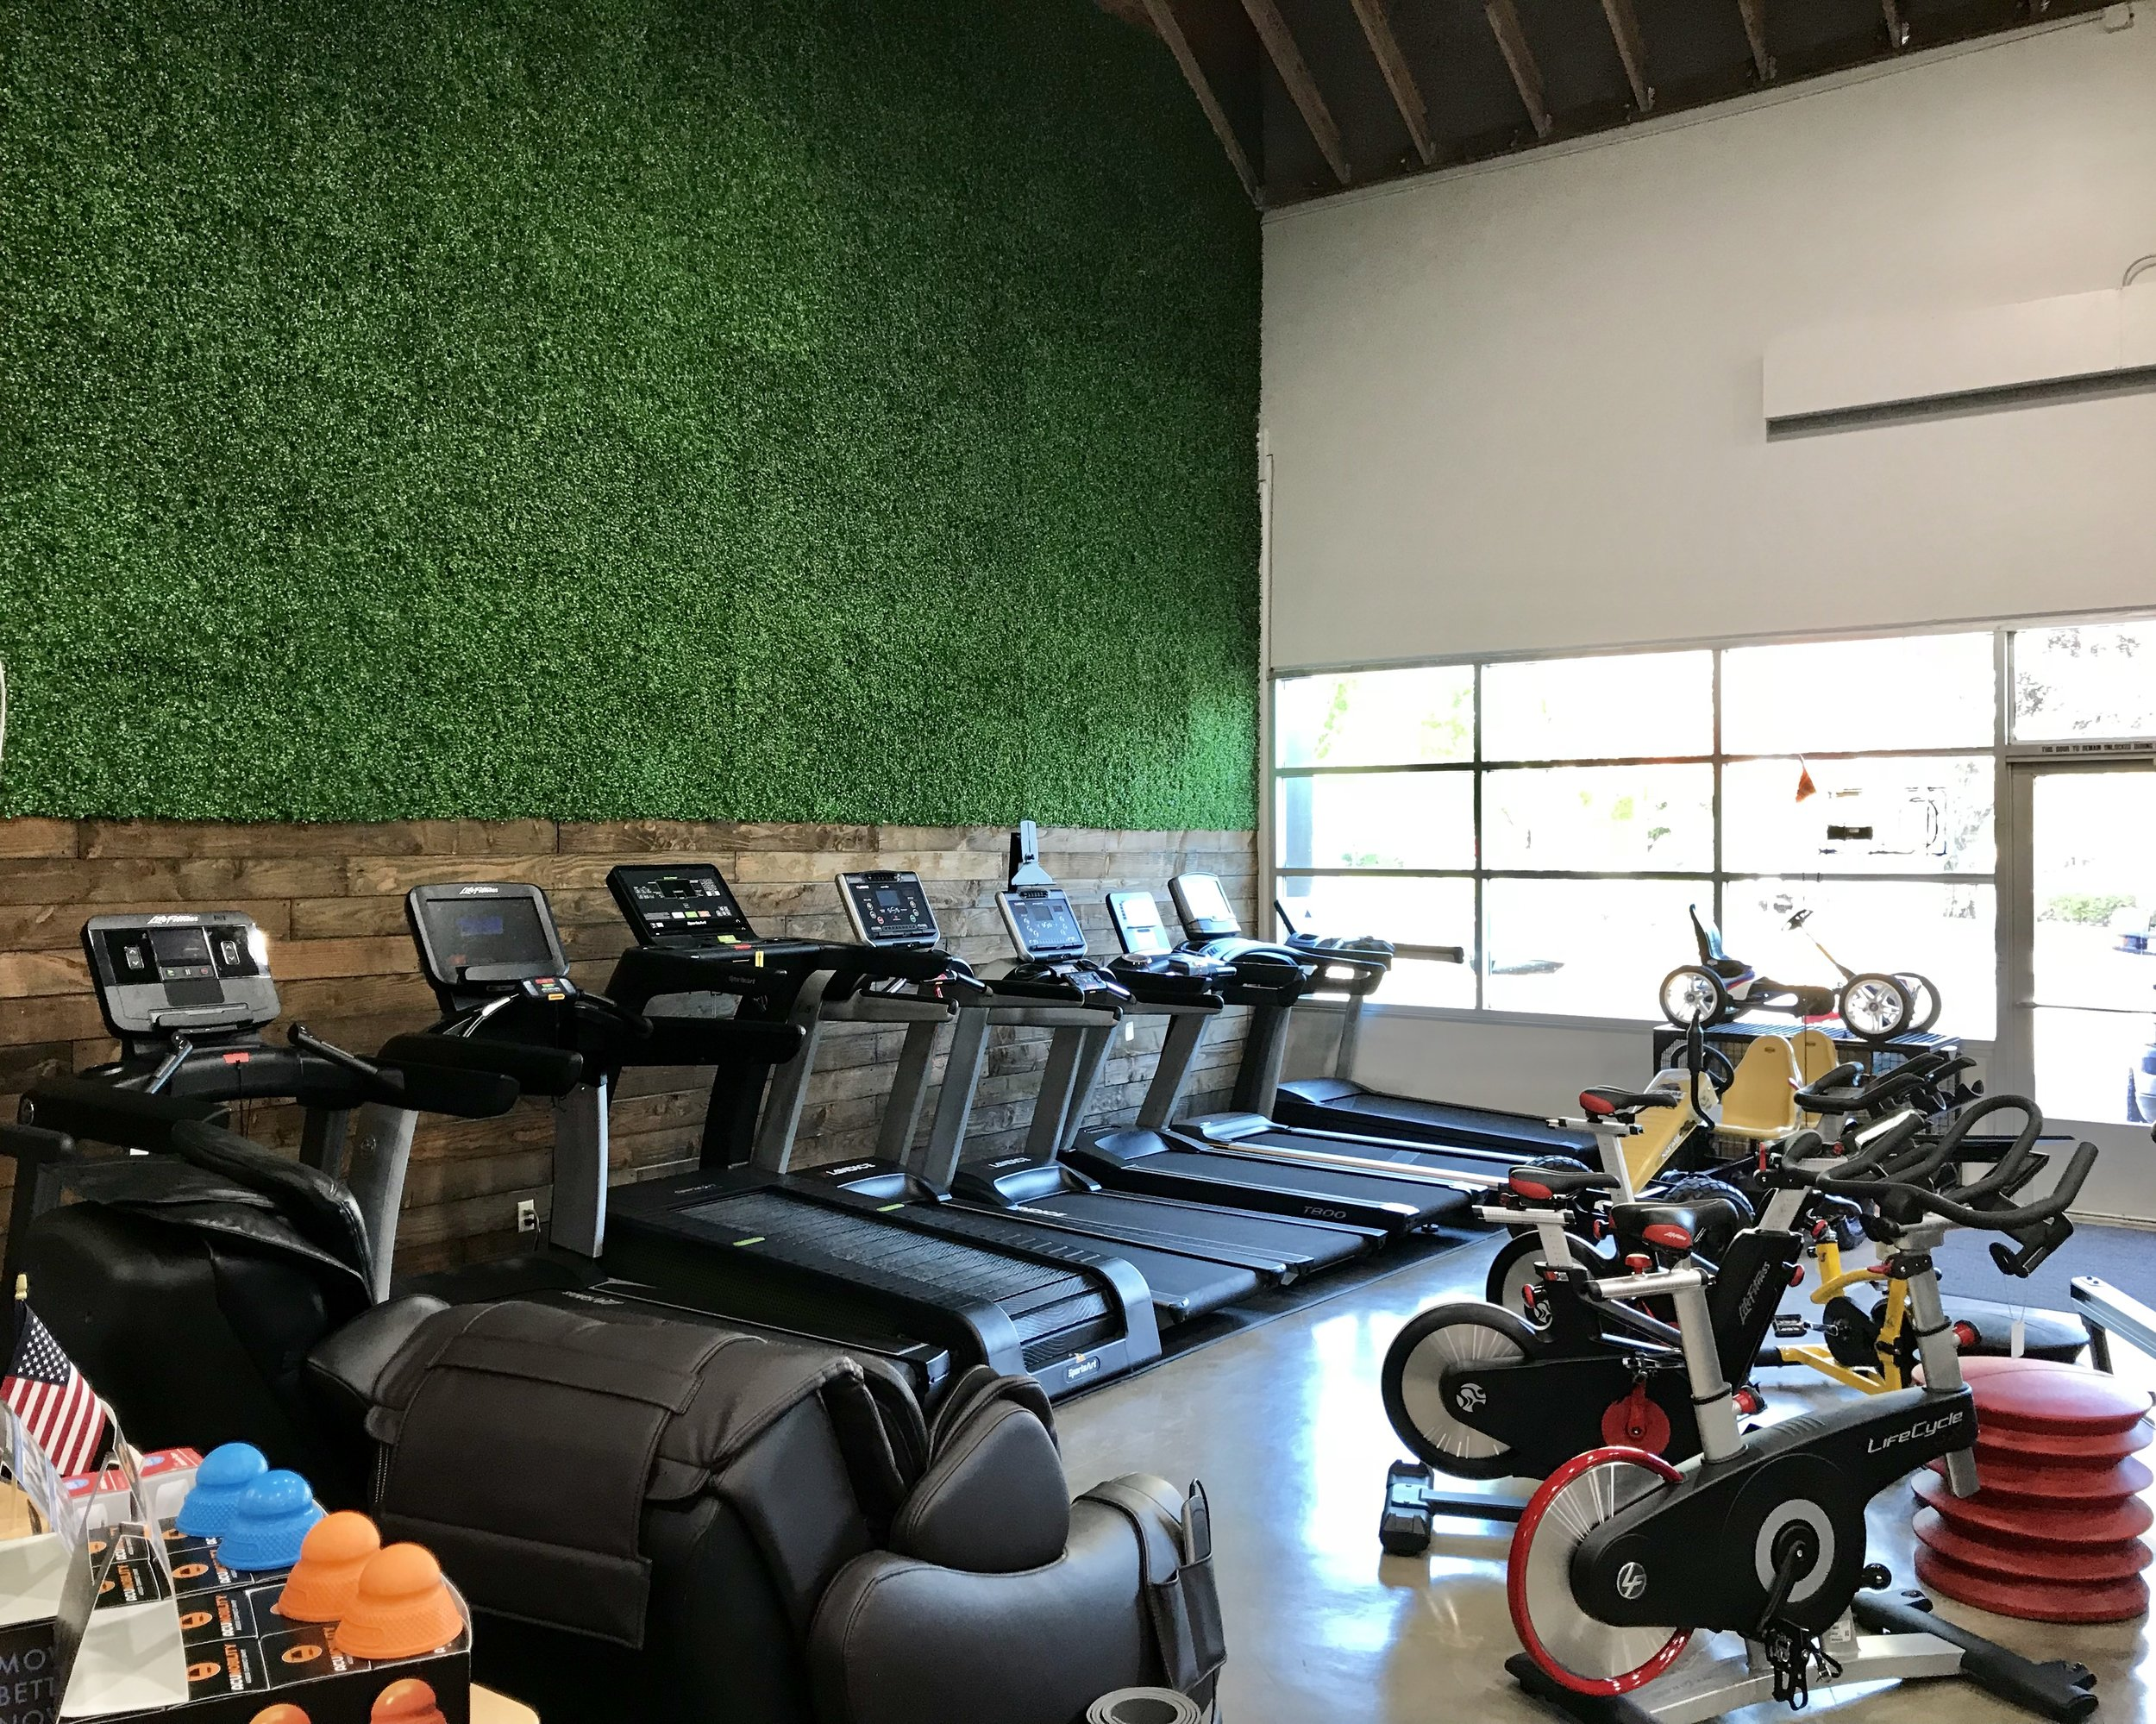 The largest selection of Exercise Equipment in the Northwest - Come in and see for yourself!